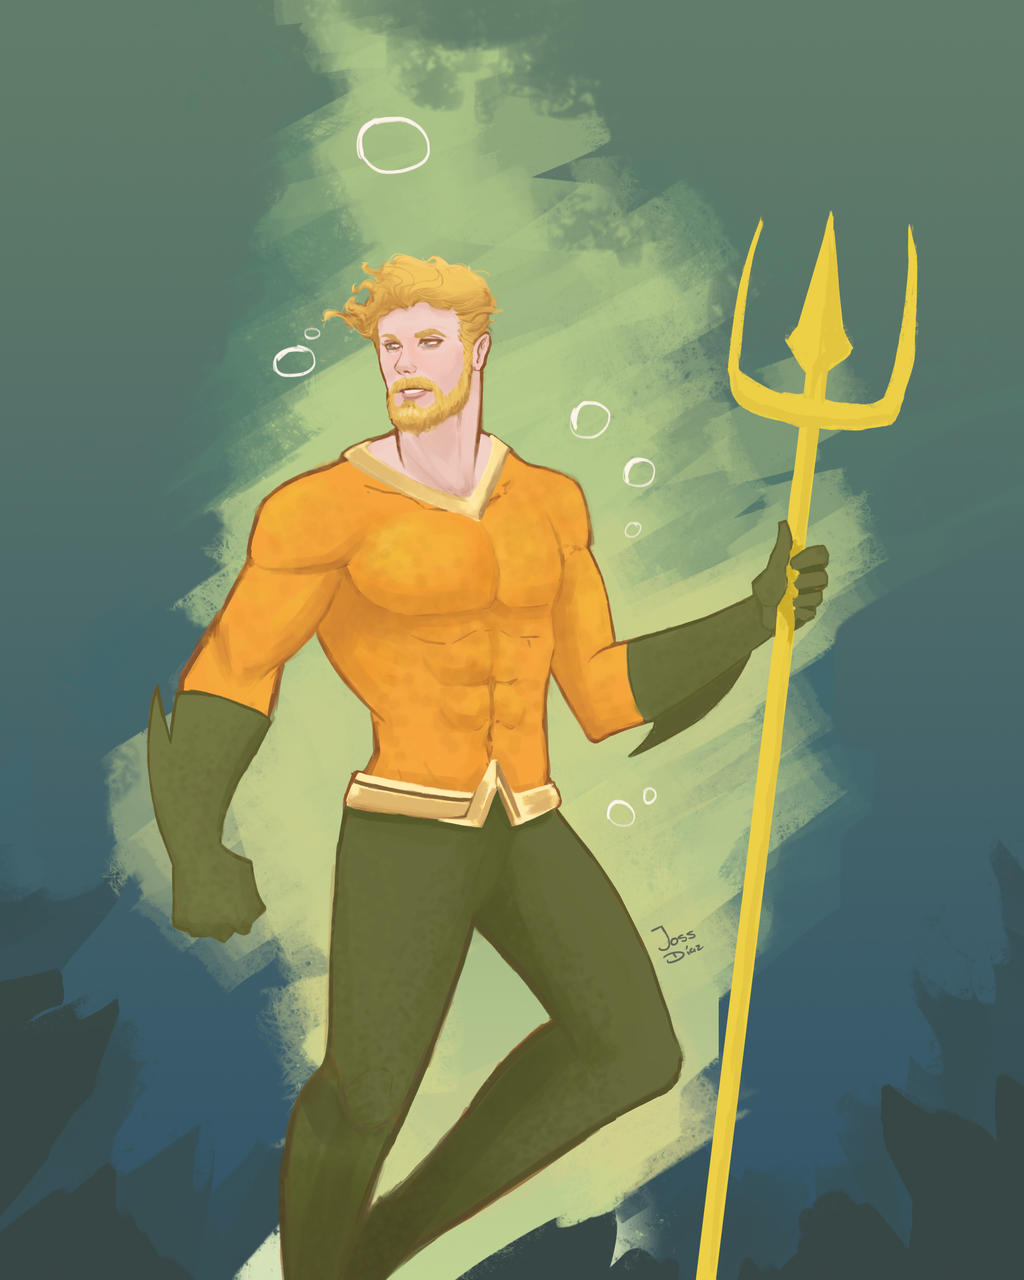 Aquaman has been the king of the sea for 80 years